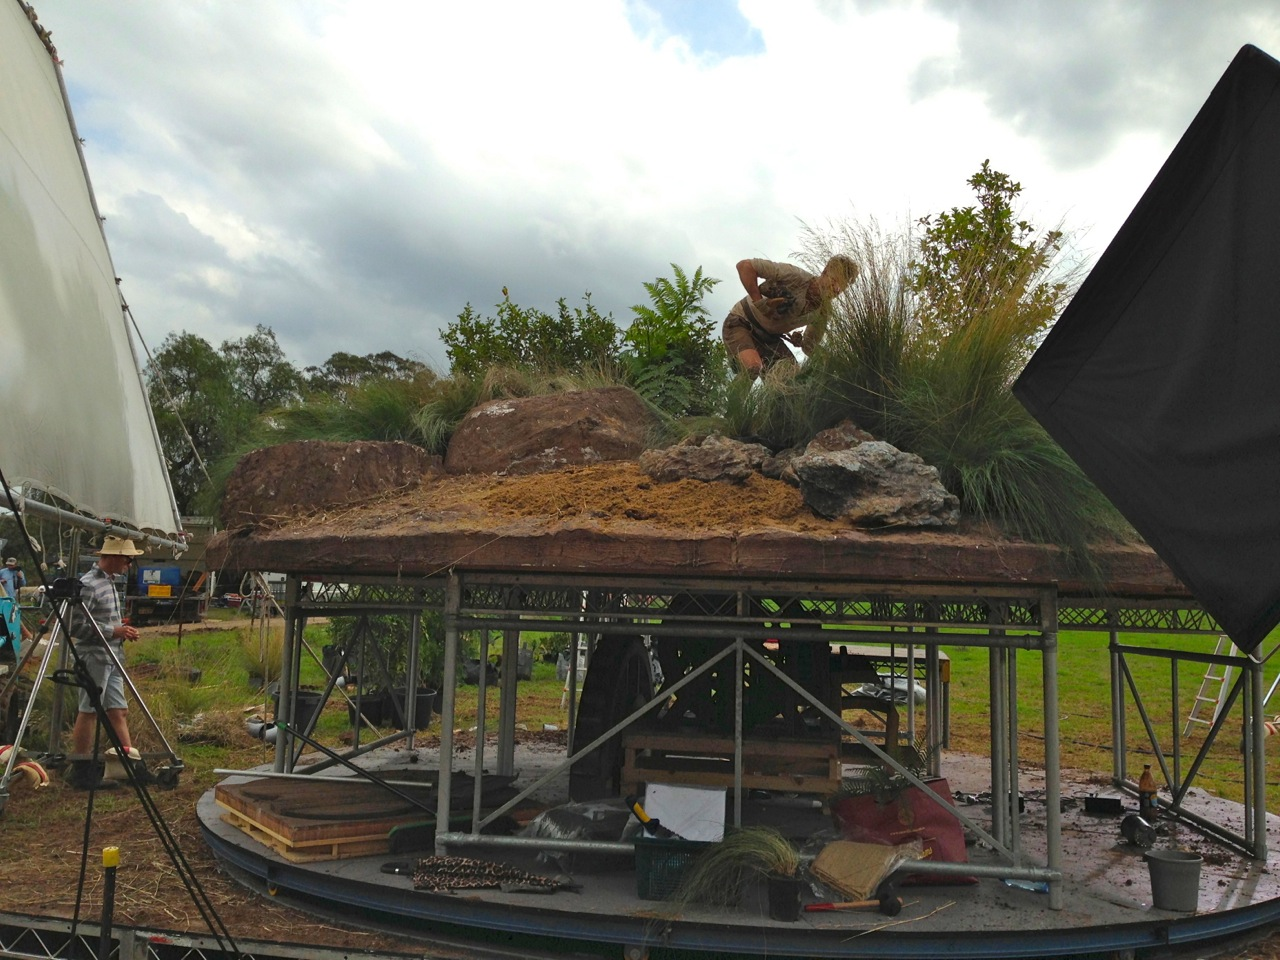 Full scale section of top of boulder built on elevated turntable to simulate turning planet shoot empty then progressively dressed with plants and small boulders